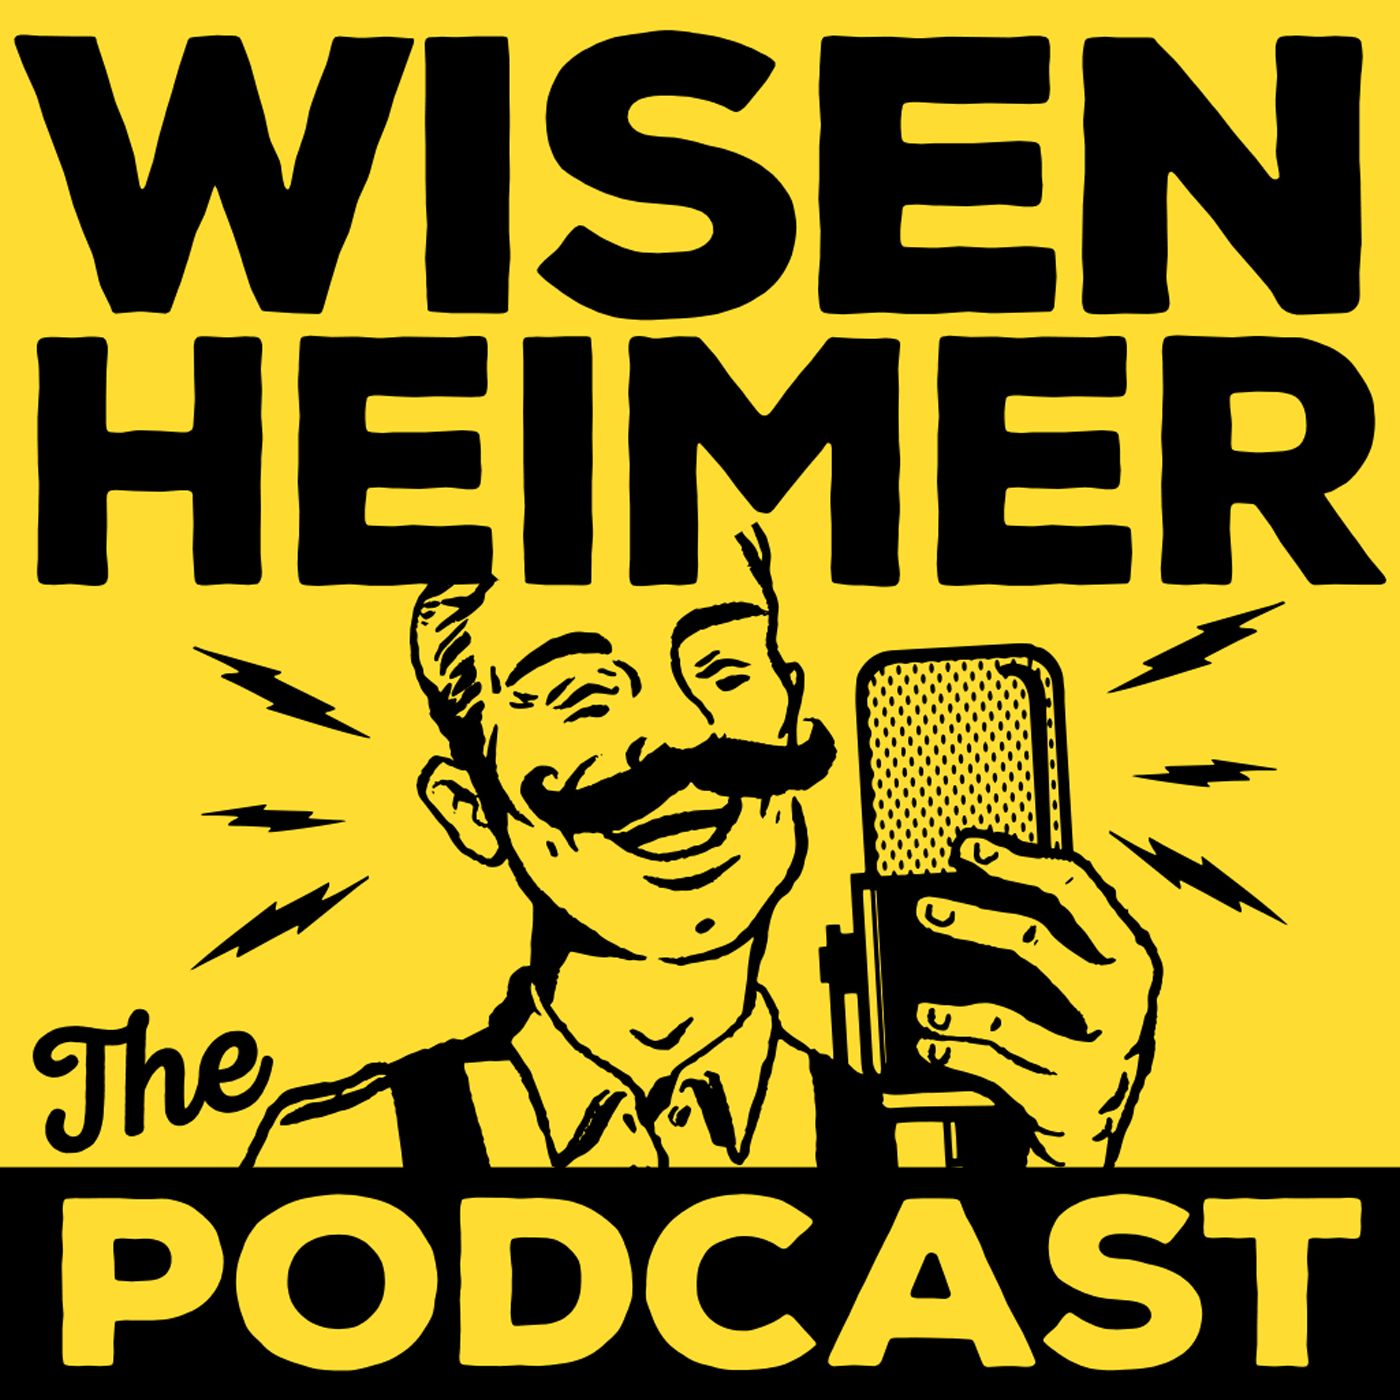 Wisenheimer: The Podcast